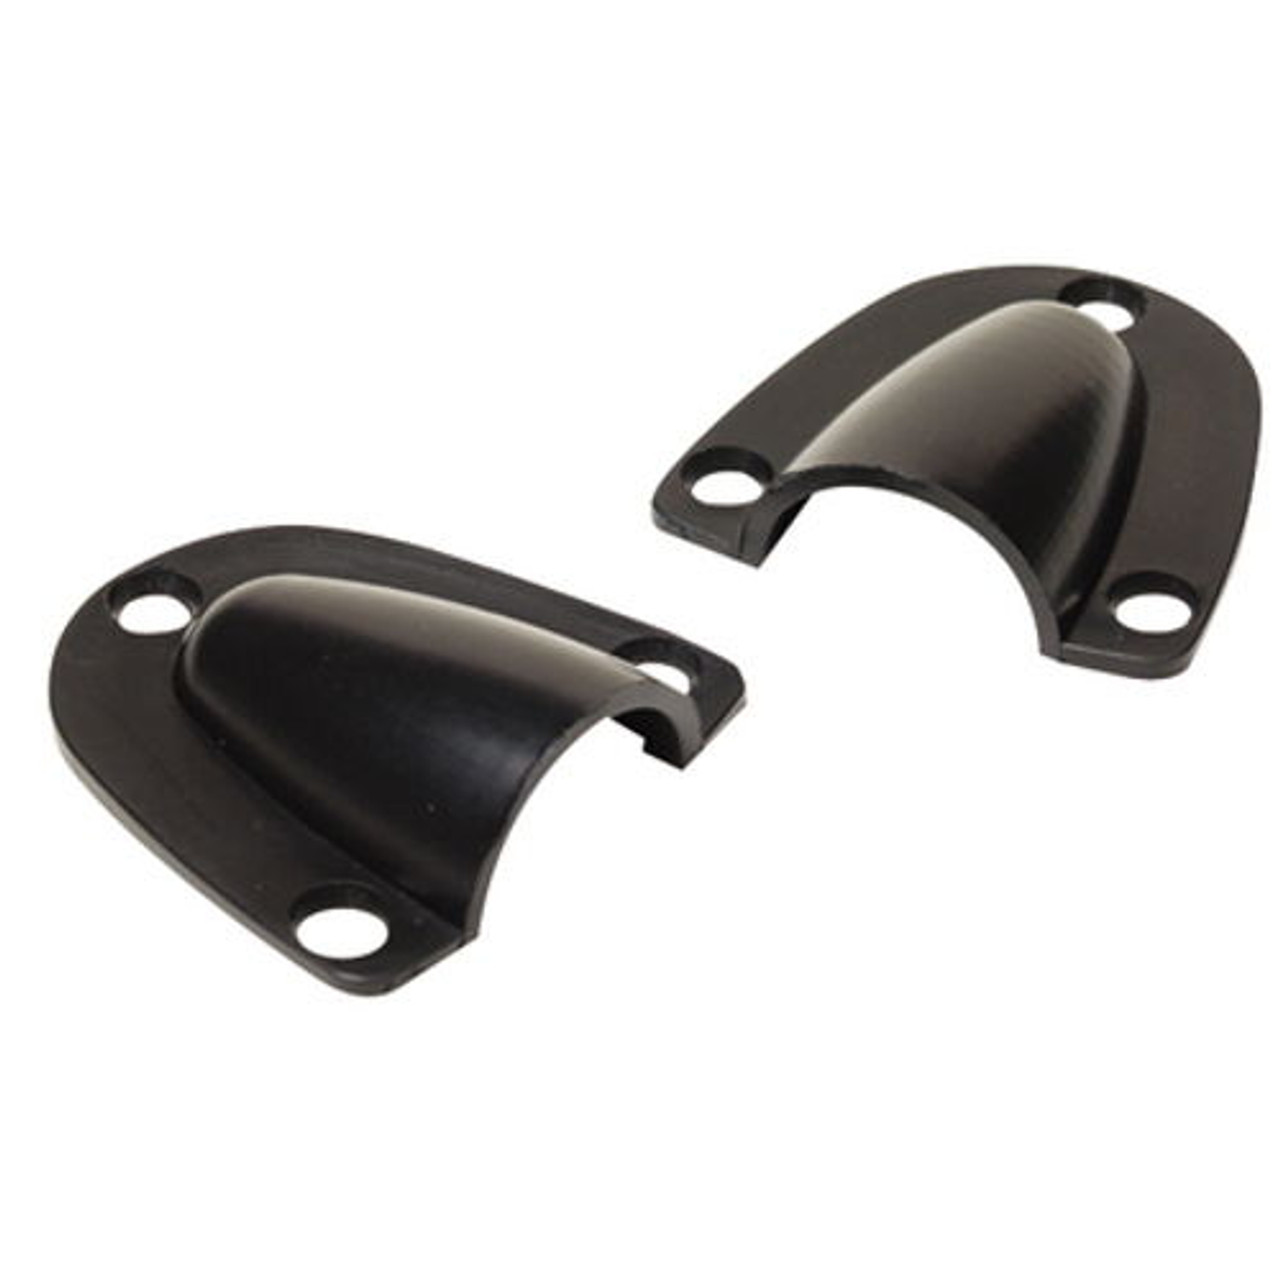 Pack of 2 Medium Black Plastic Clam Shell Ventilators or Wire Covers for Boats